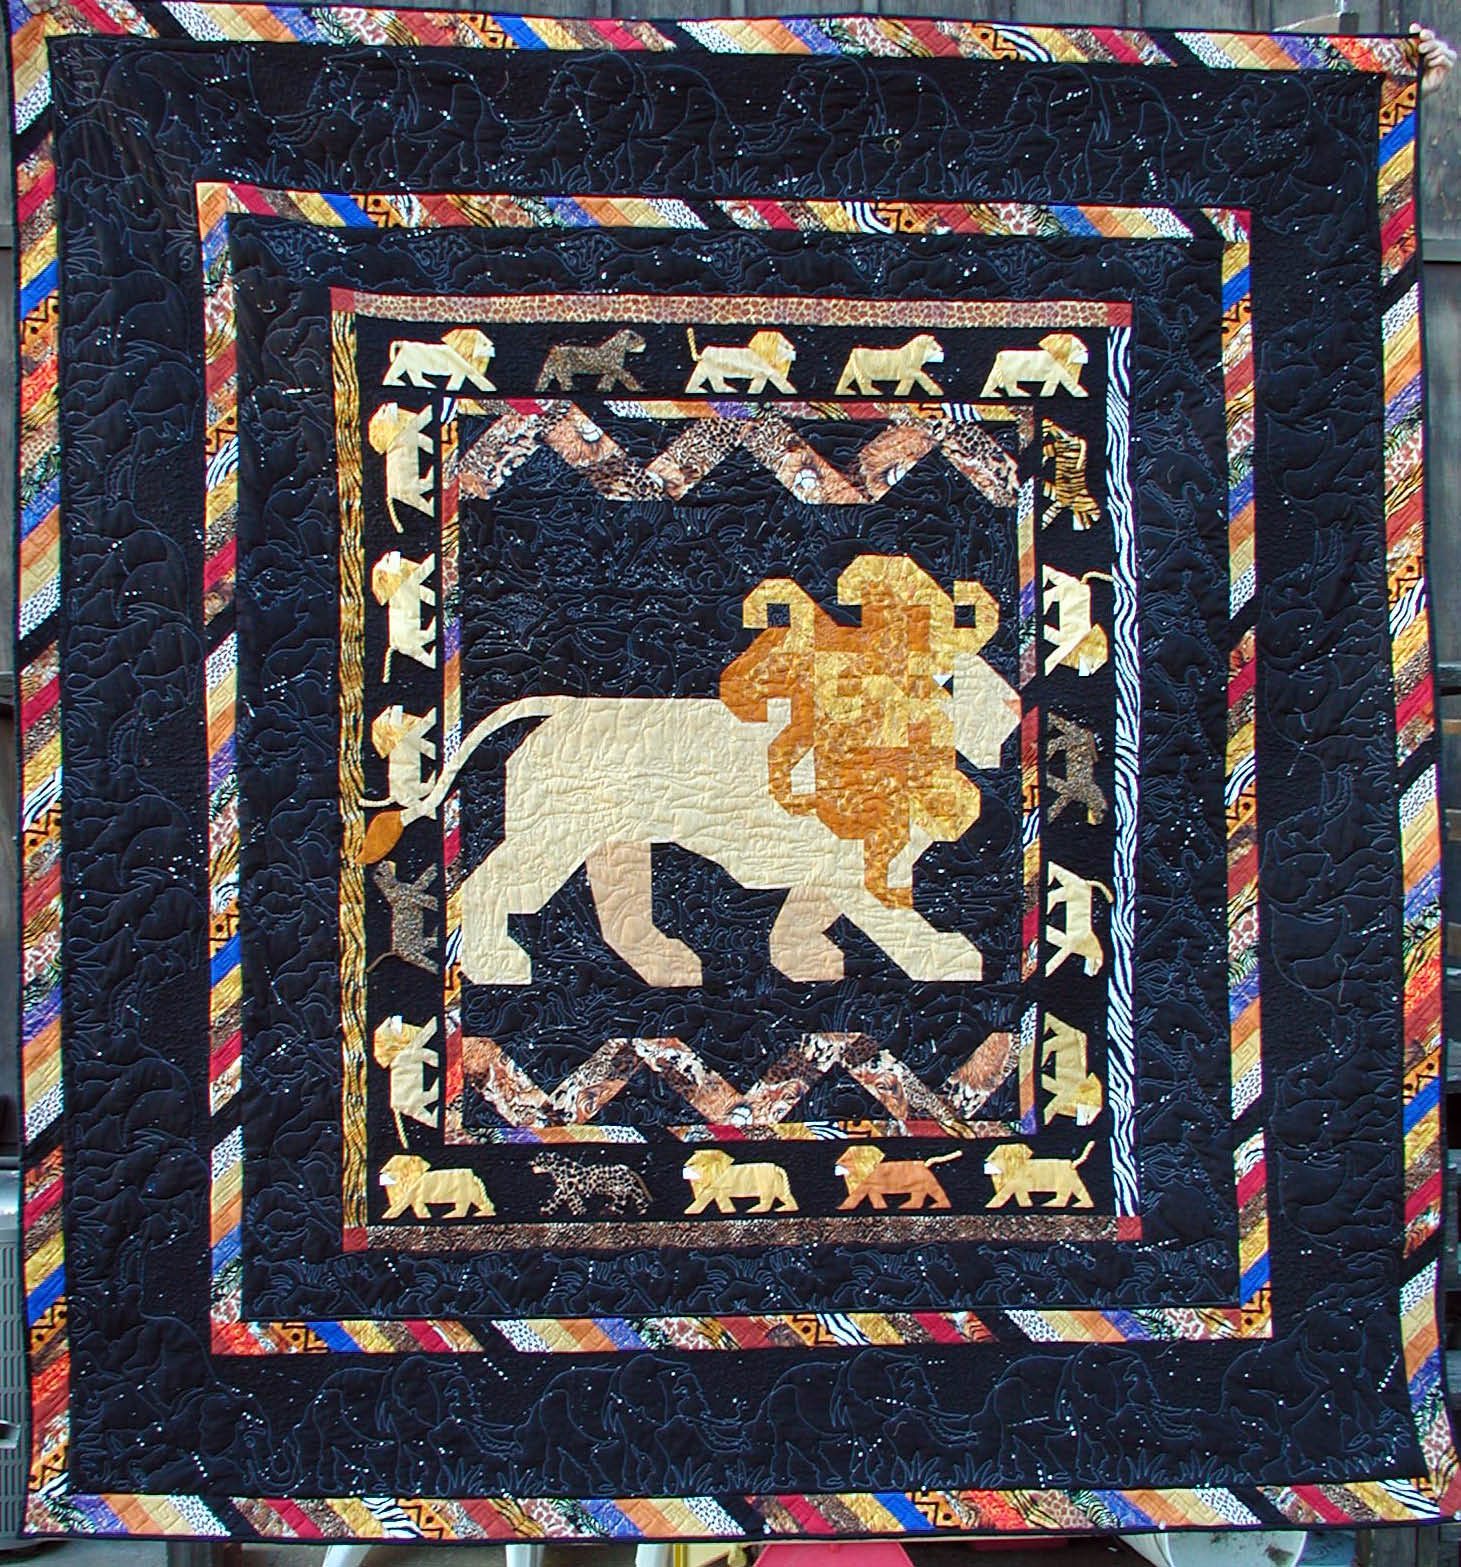 Safari_Nights_Quilt_Fullview